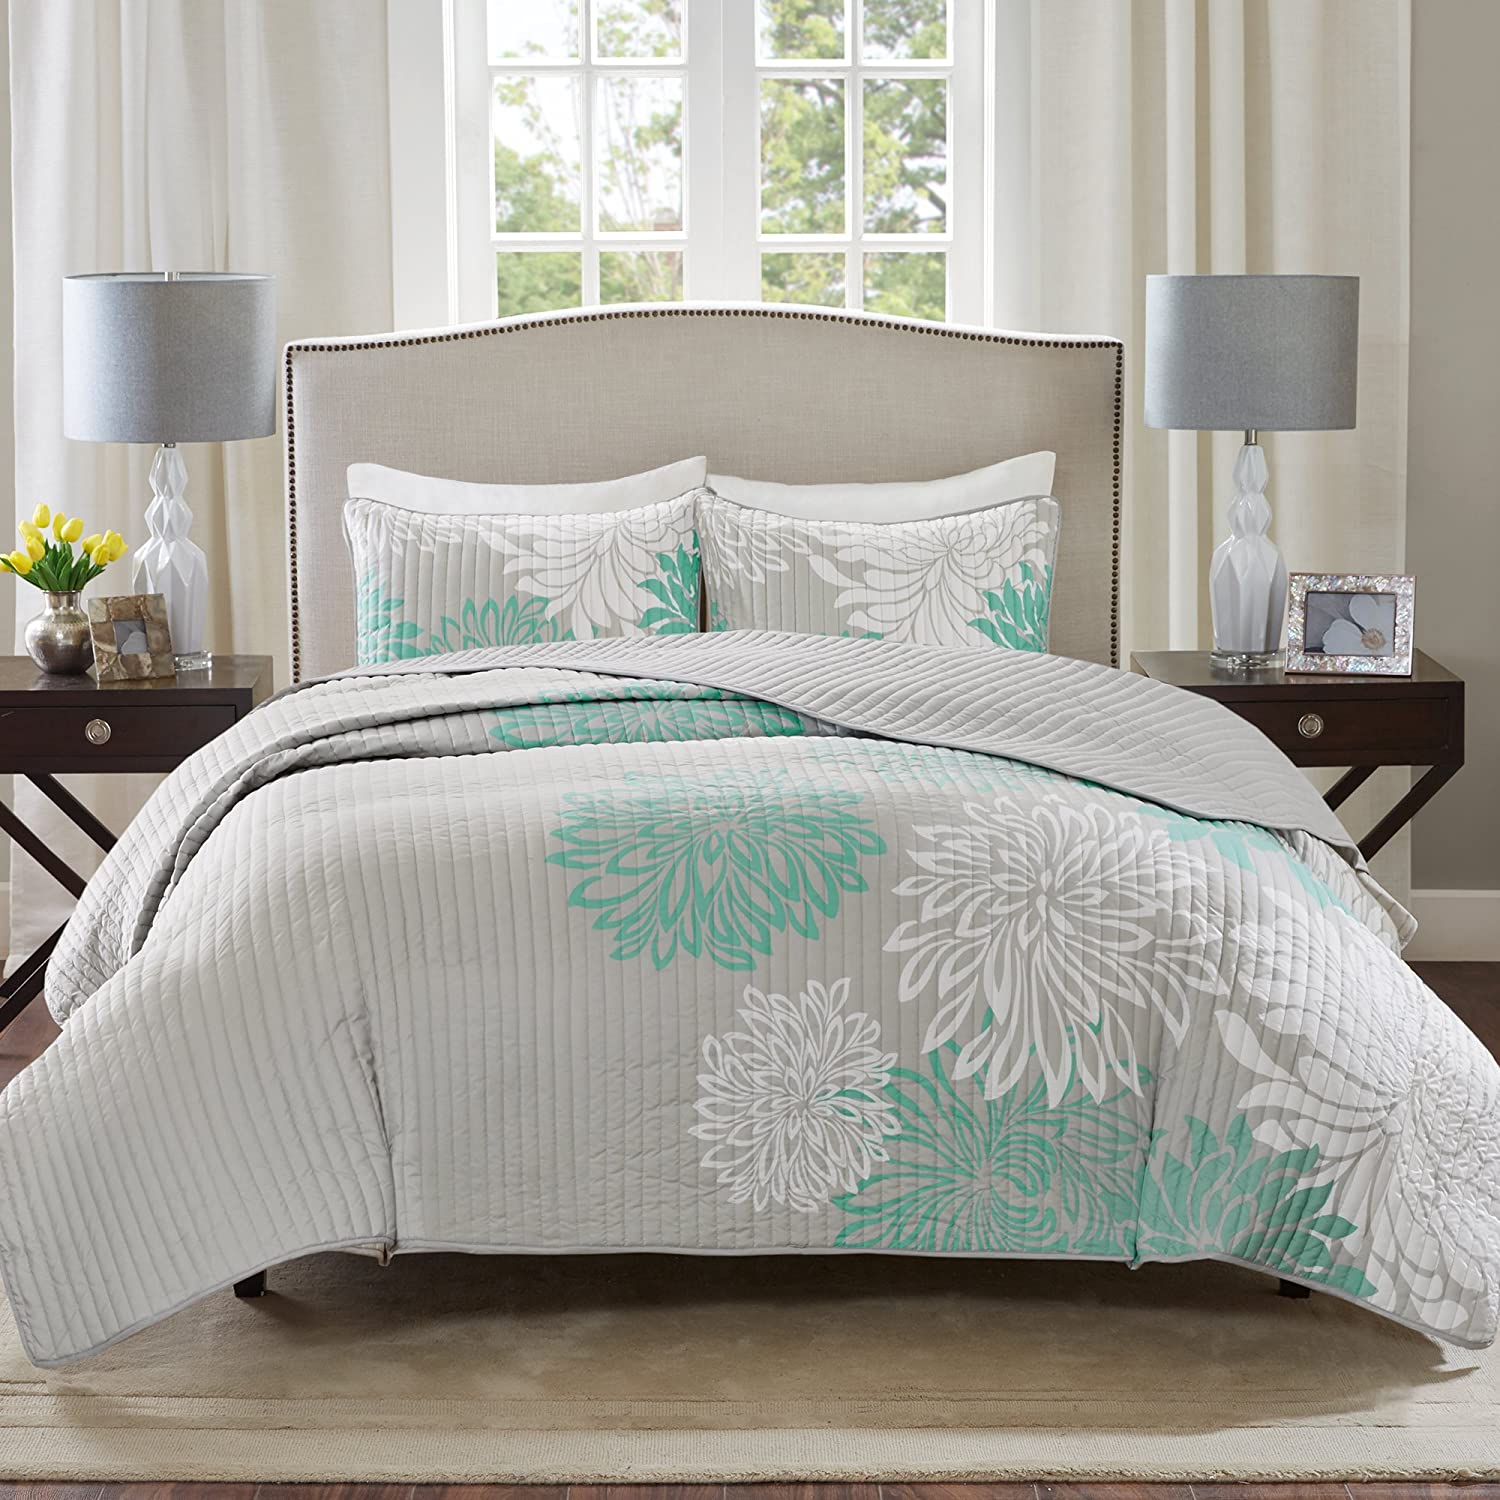 Comfort Spaces Enya Quilt Set - Stit Print Channel Floral Limited time for free shipping Casual Las Vegas Mall